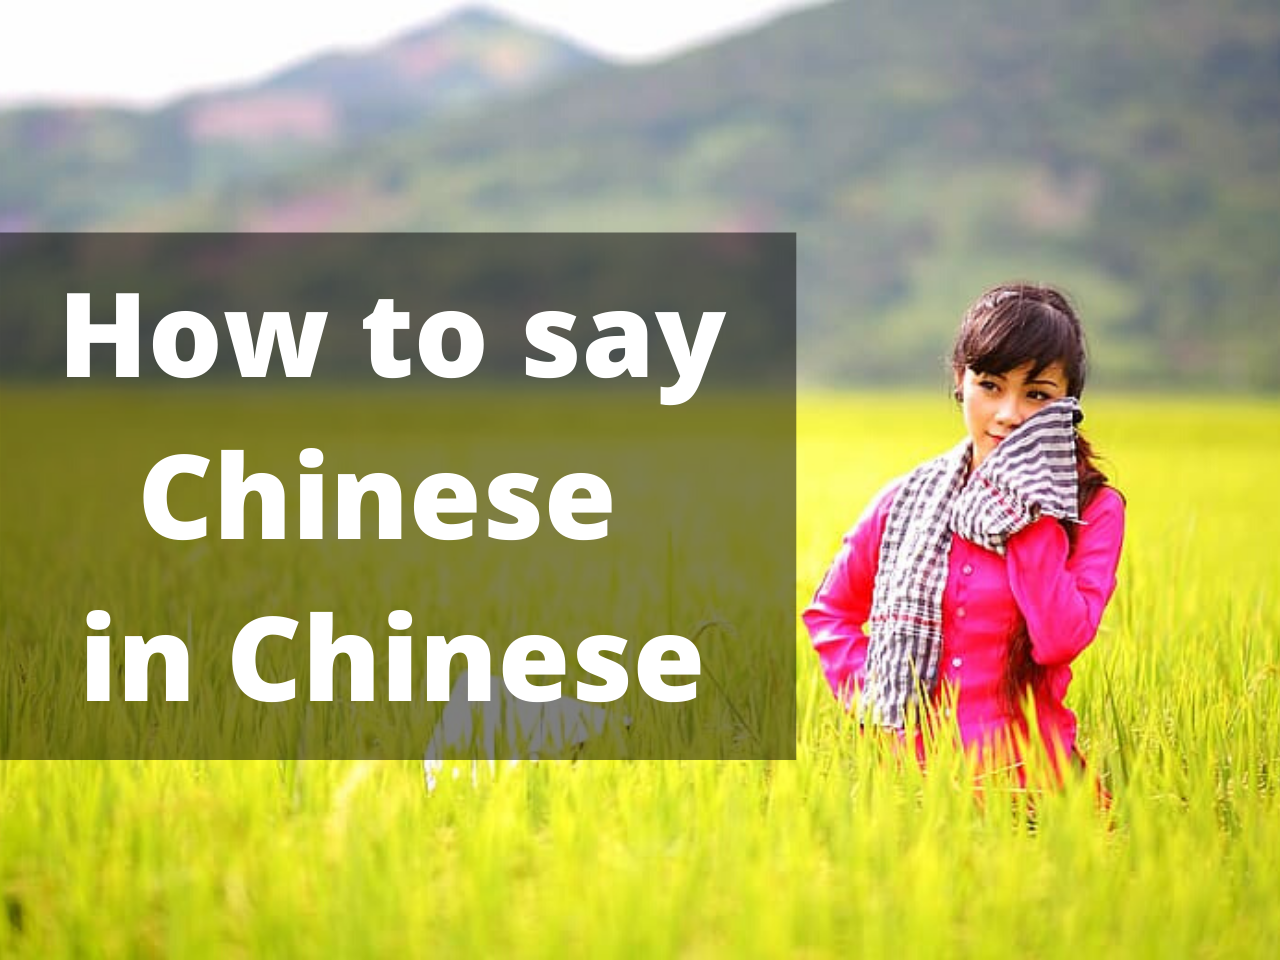 How to say Chinese in Chinese